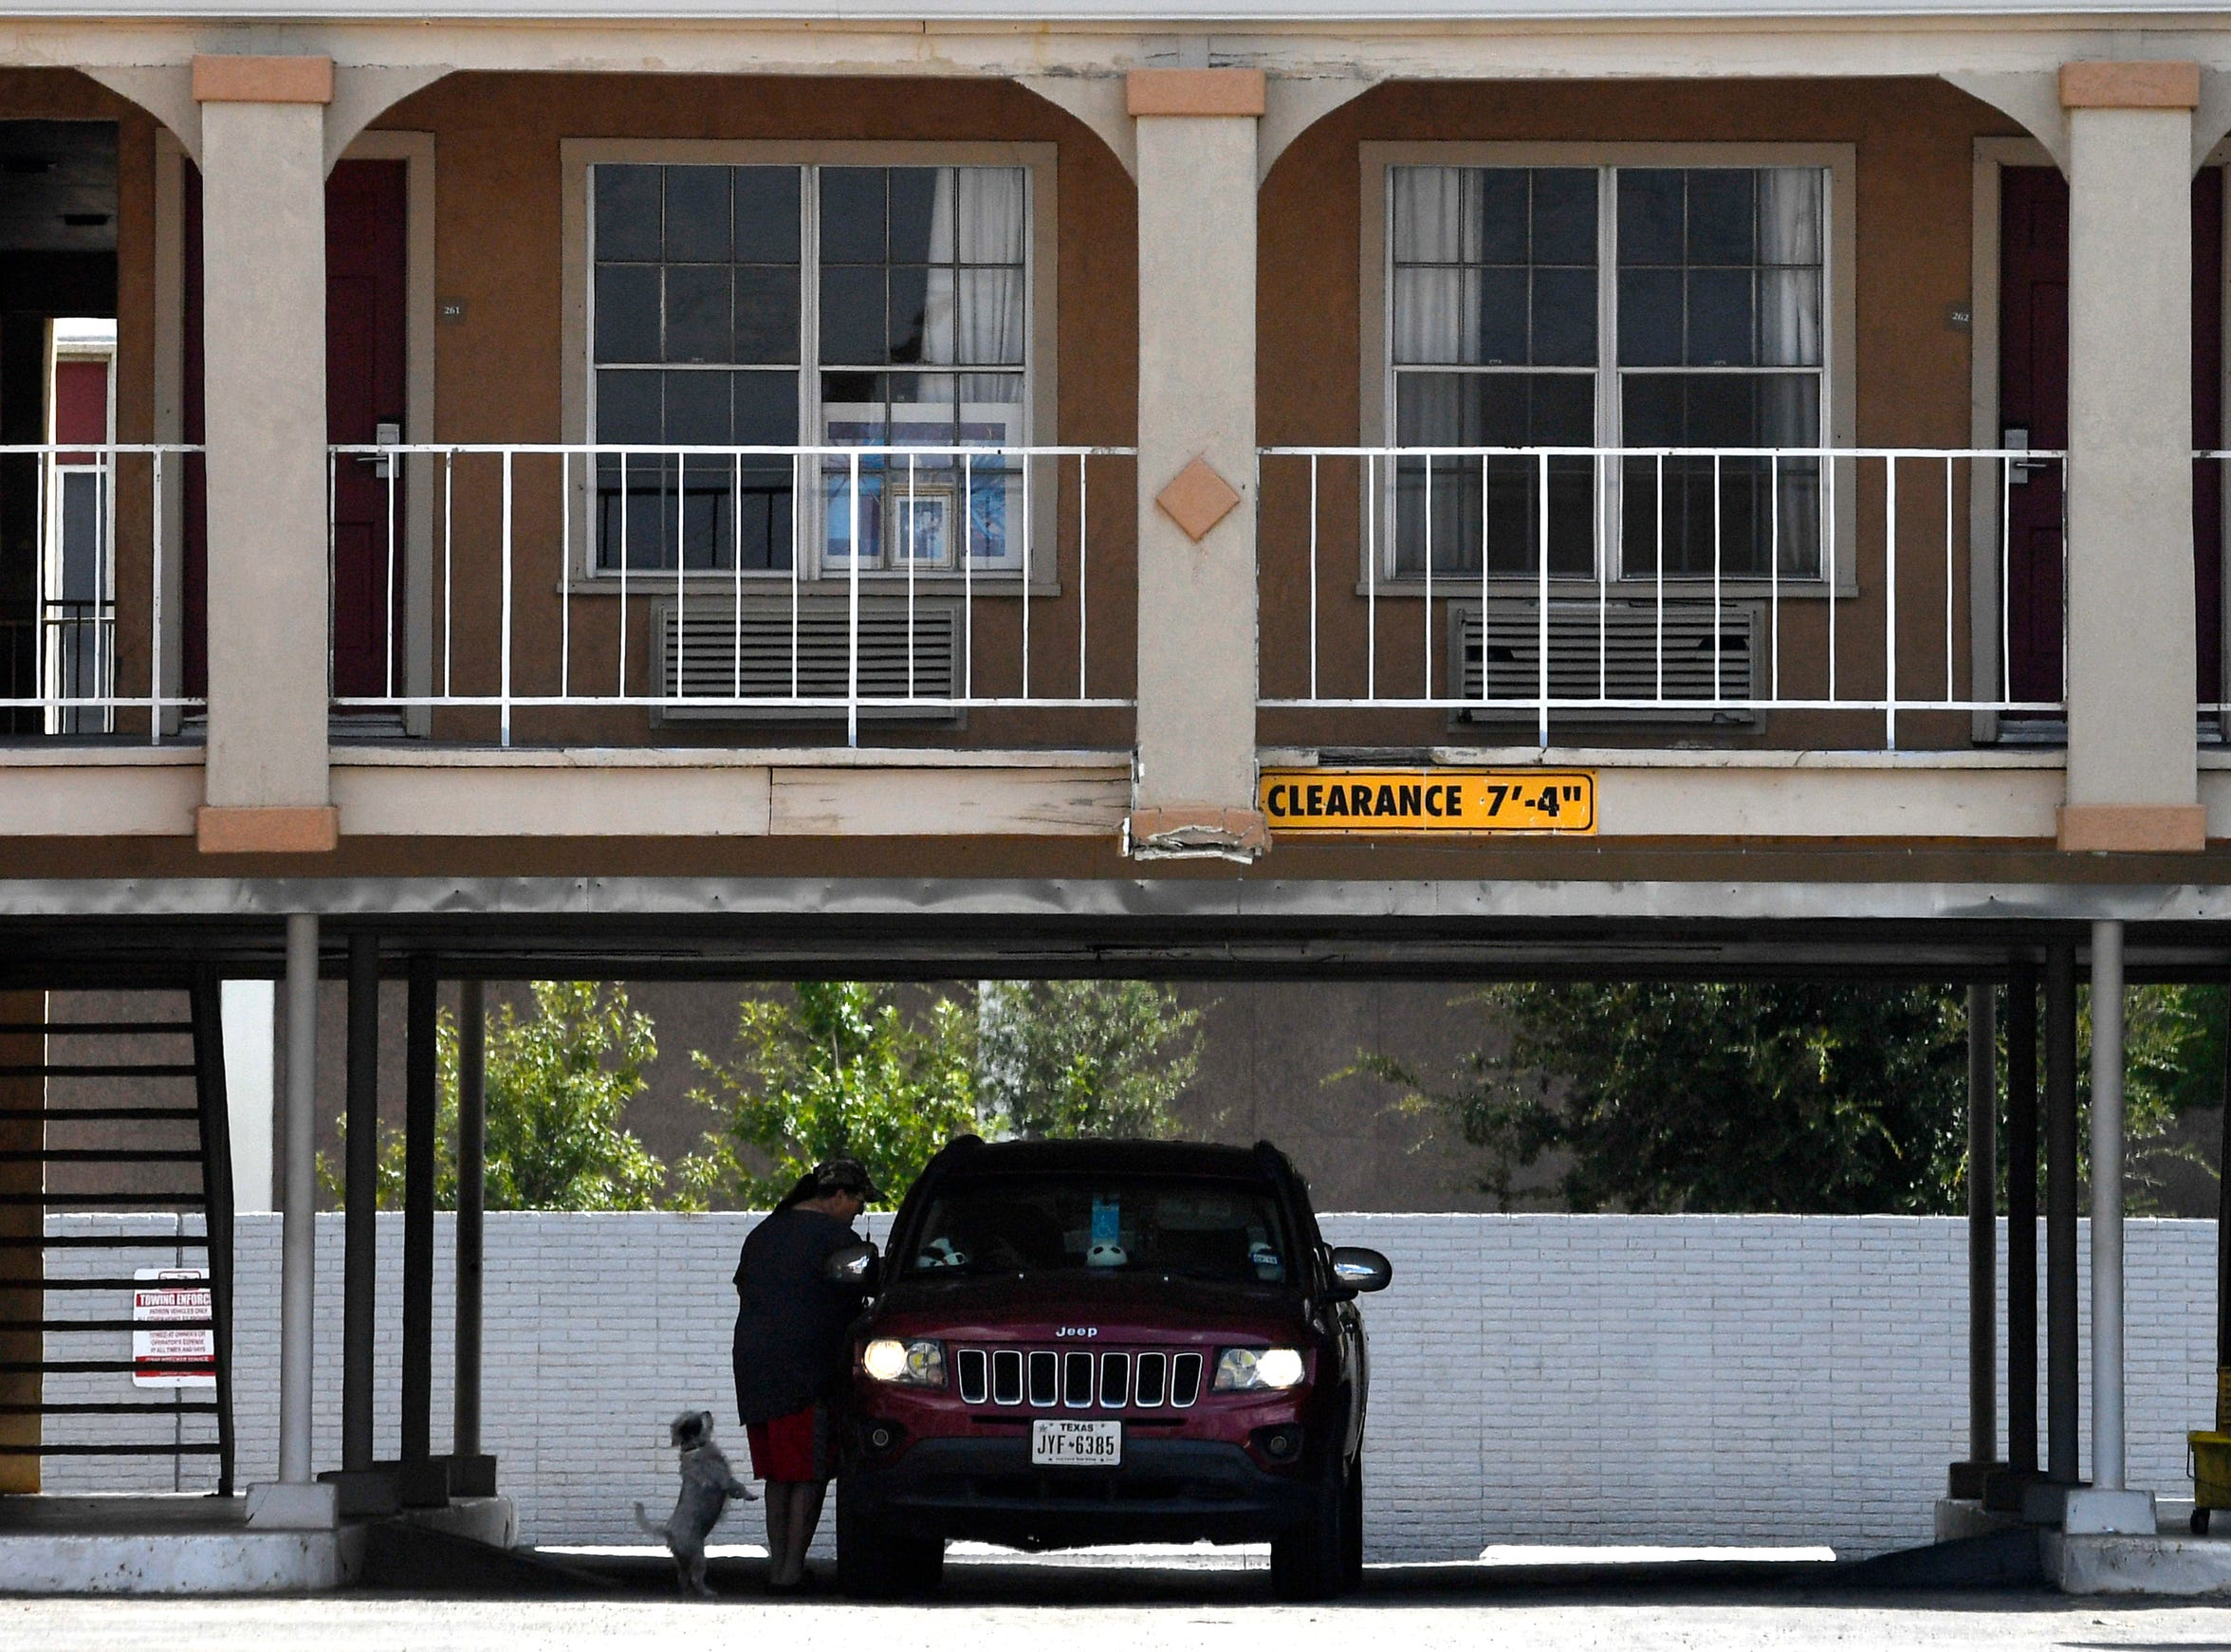 A dog stands on its hind legs as a woman speaks to a driver at Civic Plaza Hotel in downtown Abilene on Sept. 17.